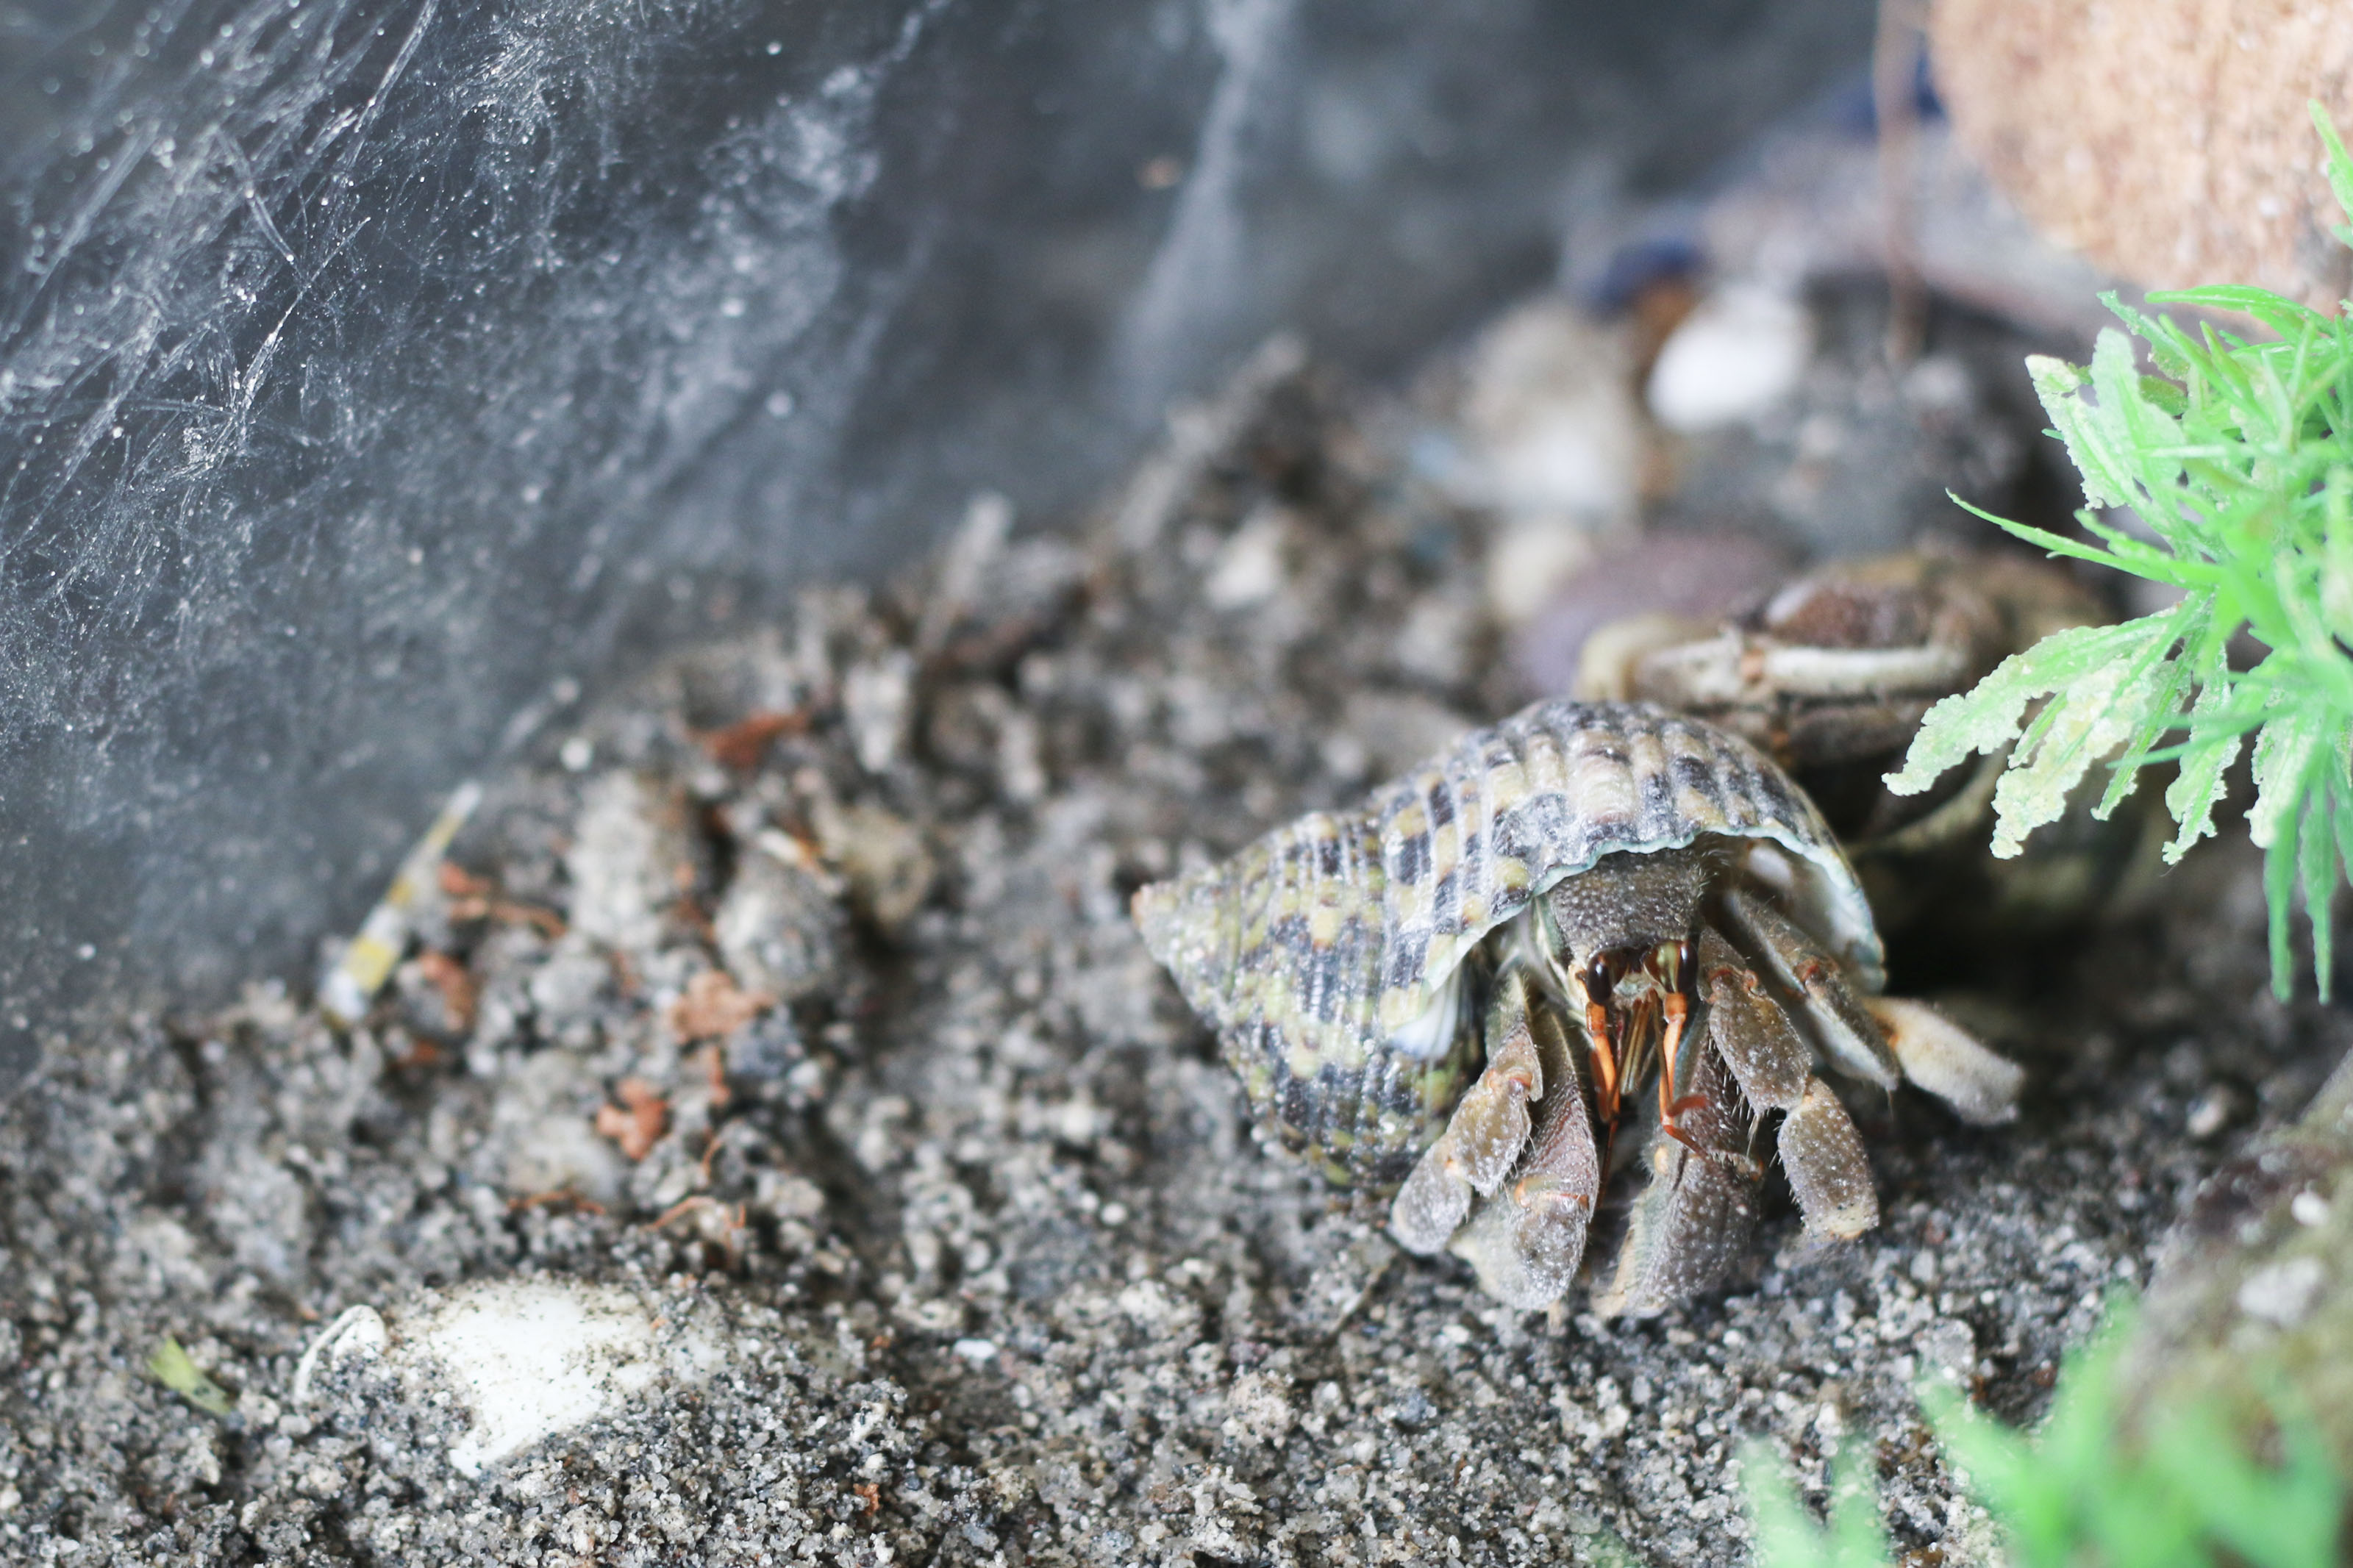 How To Maintain Humidity In A Pet Hermit Crab Habitat 7 Steps